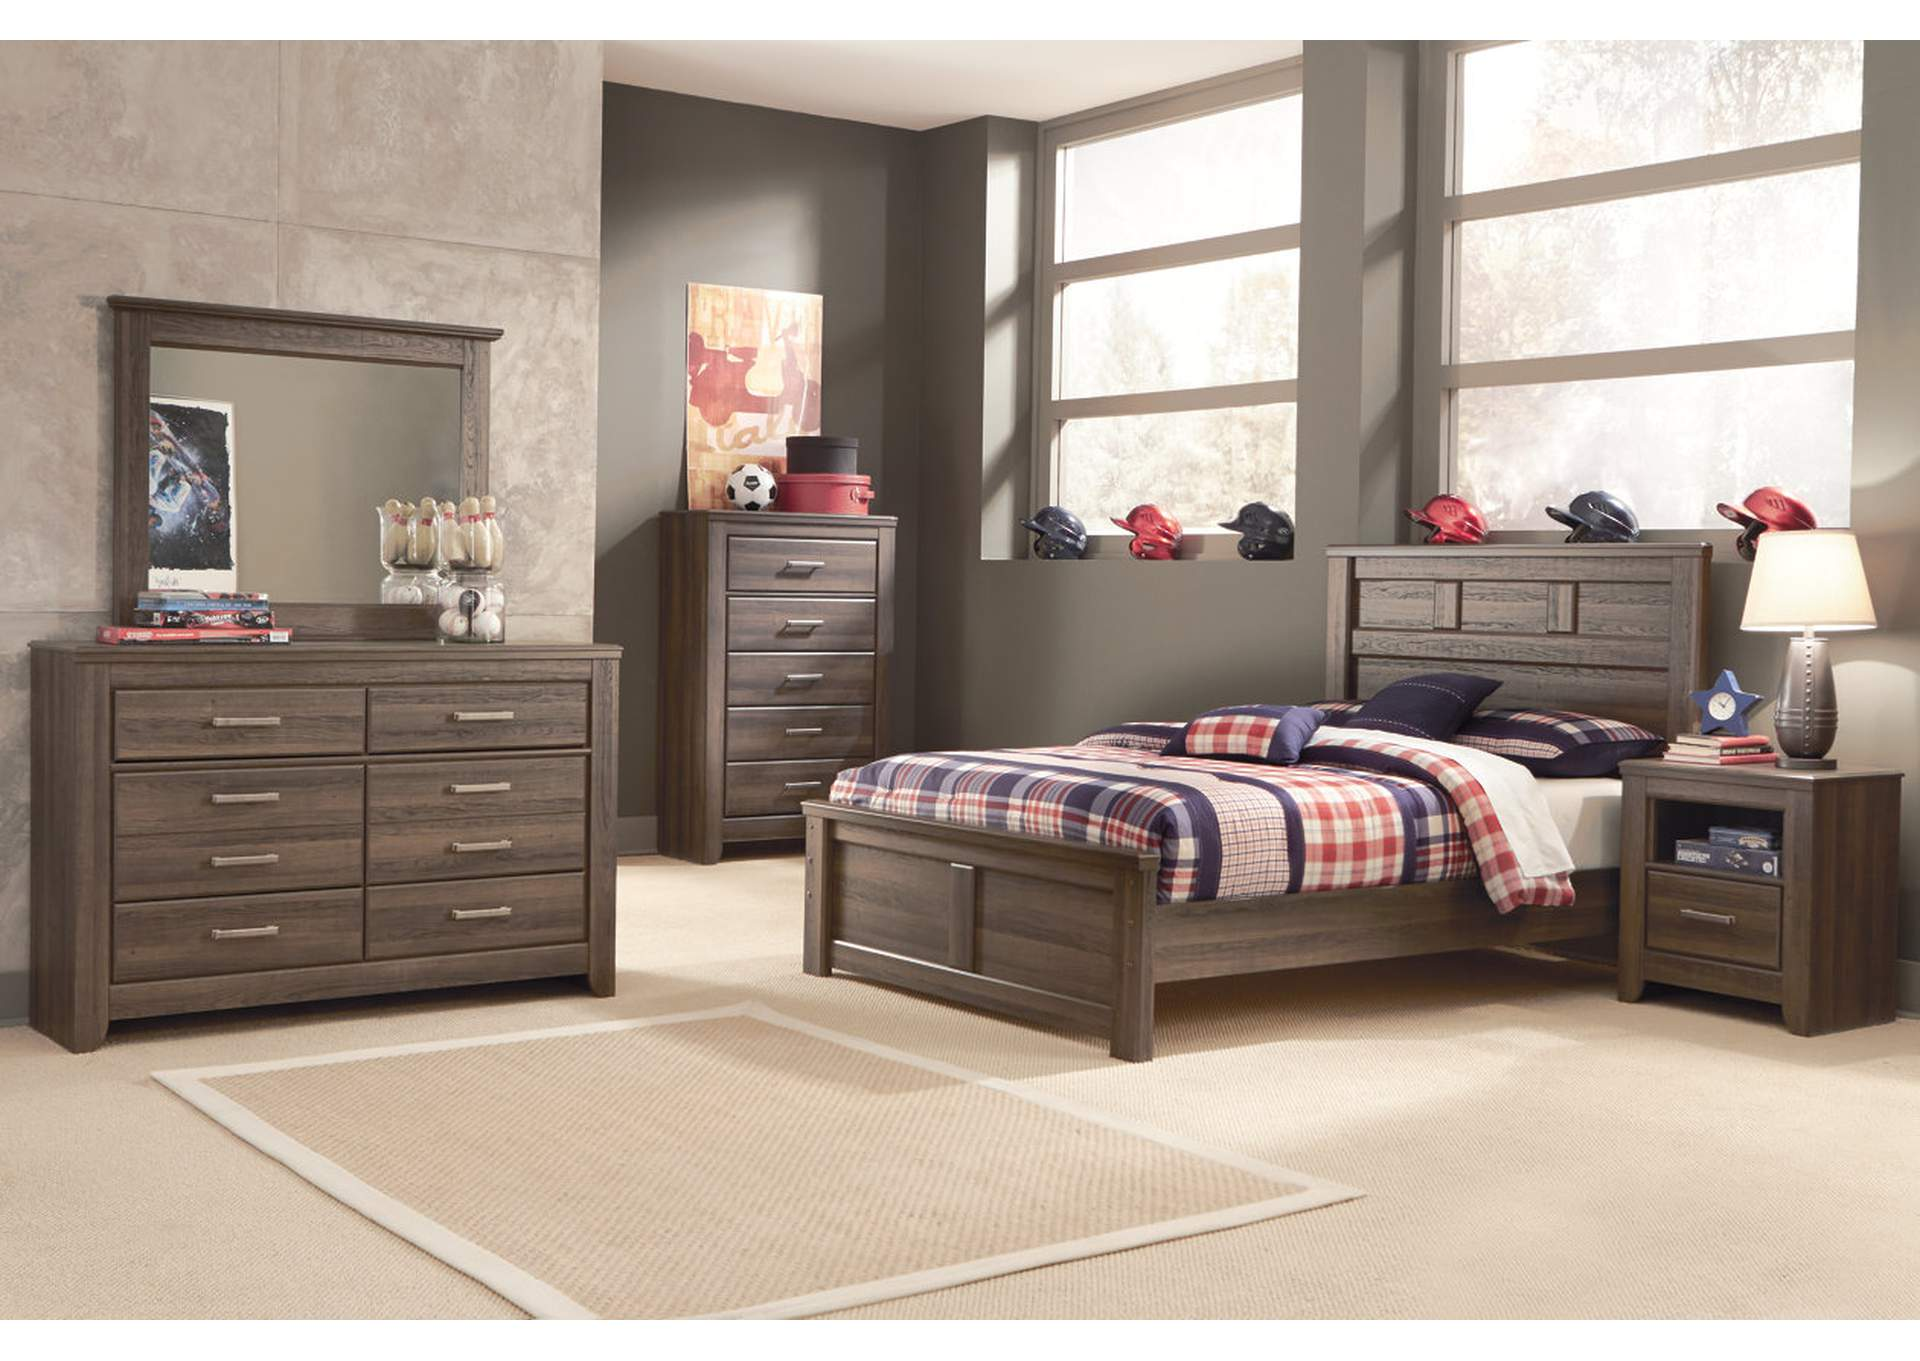 Juararo Full Panel Bed w/Dresser, Mirror & Drawer Chest,Signature Design By Ashley